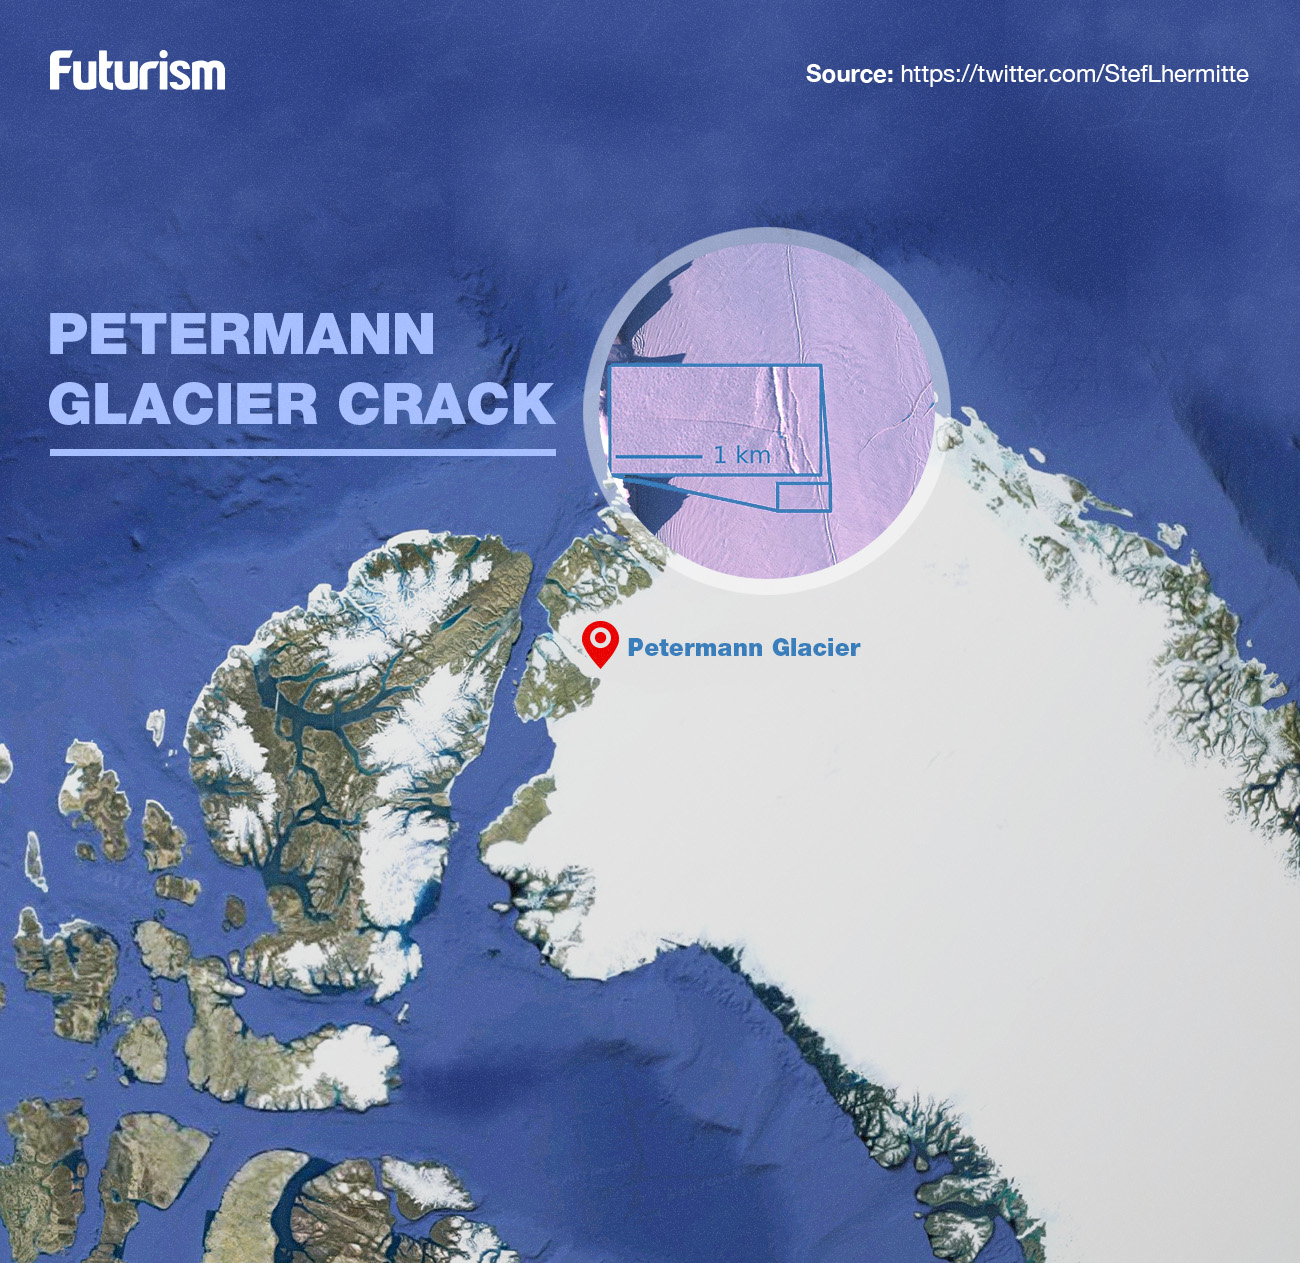 *3* A Crack in One of Greenland's Glaciers Has Scientists Baffled and Worried